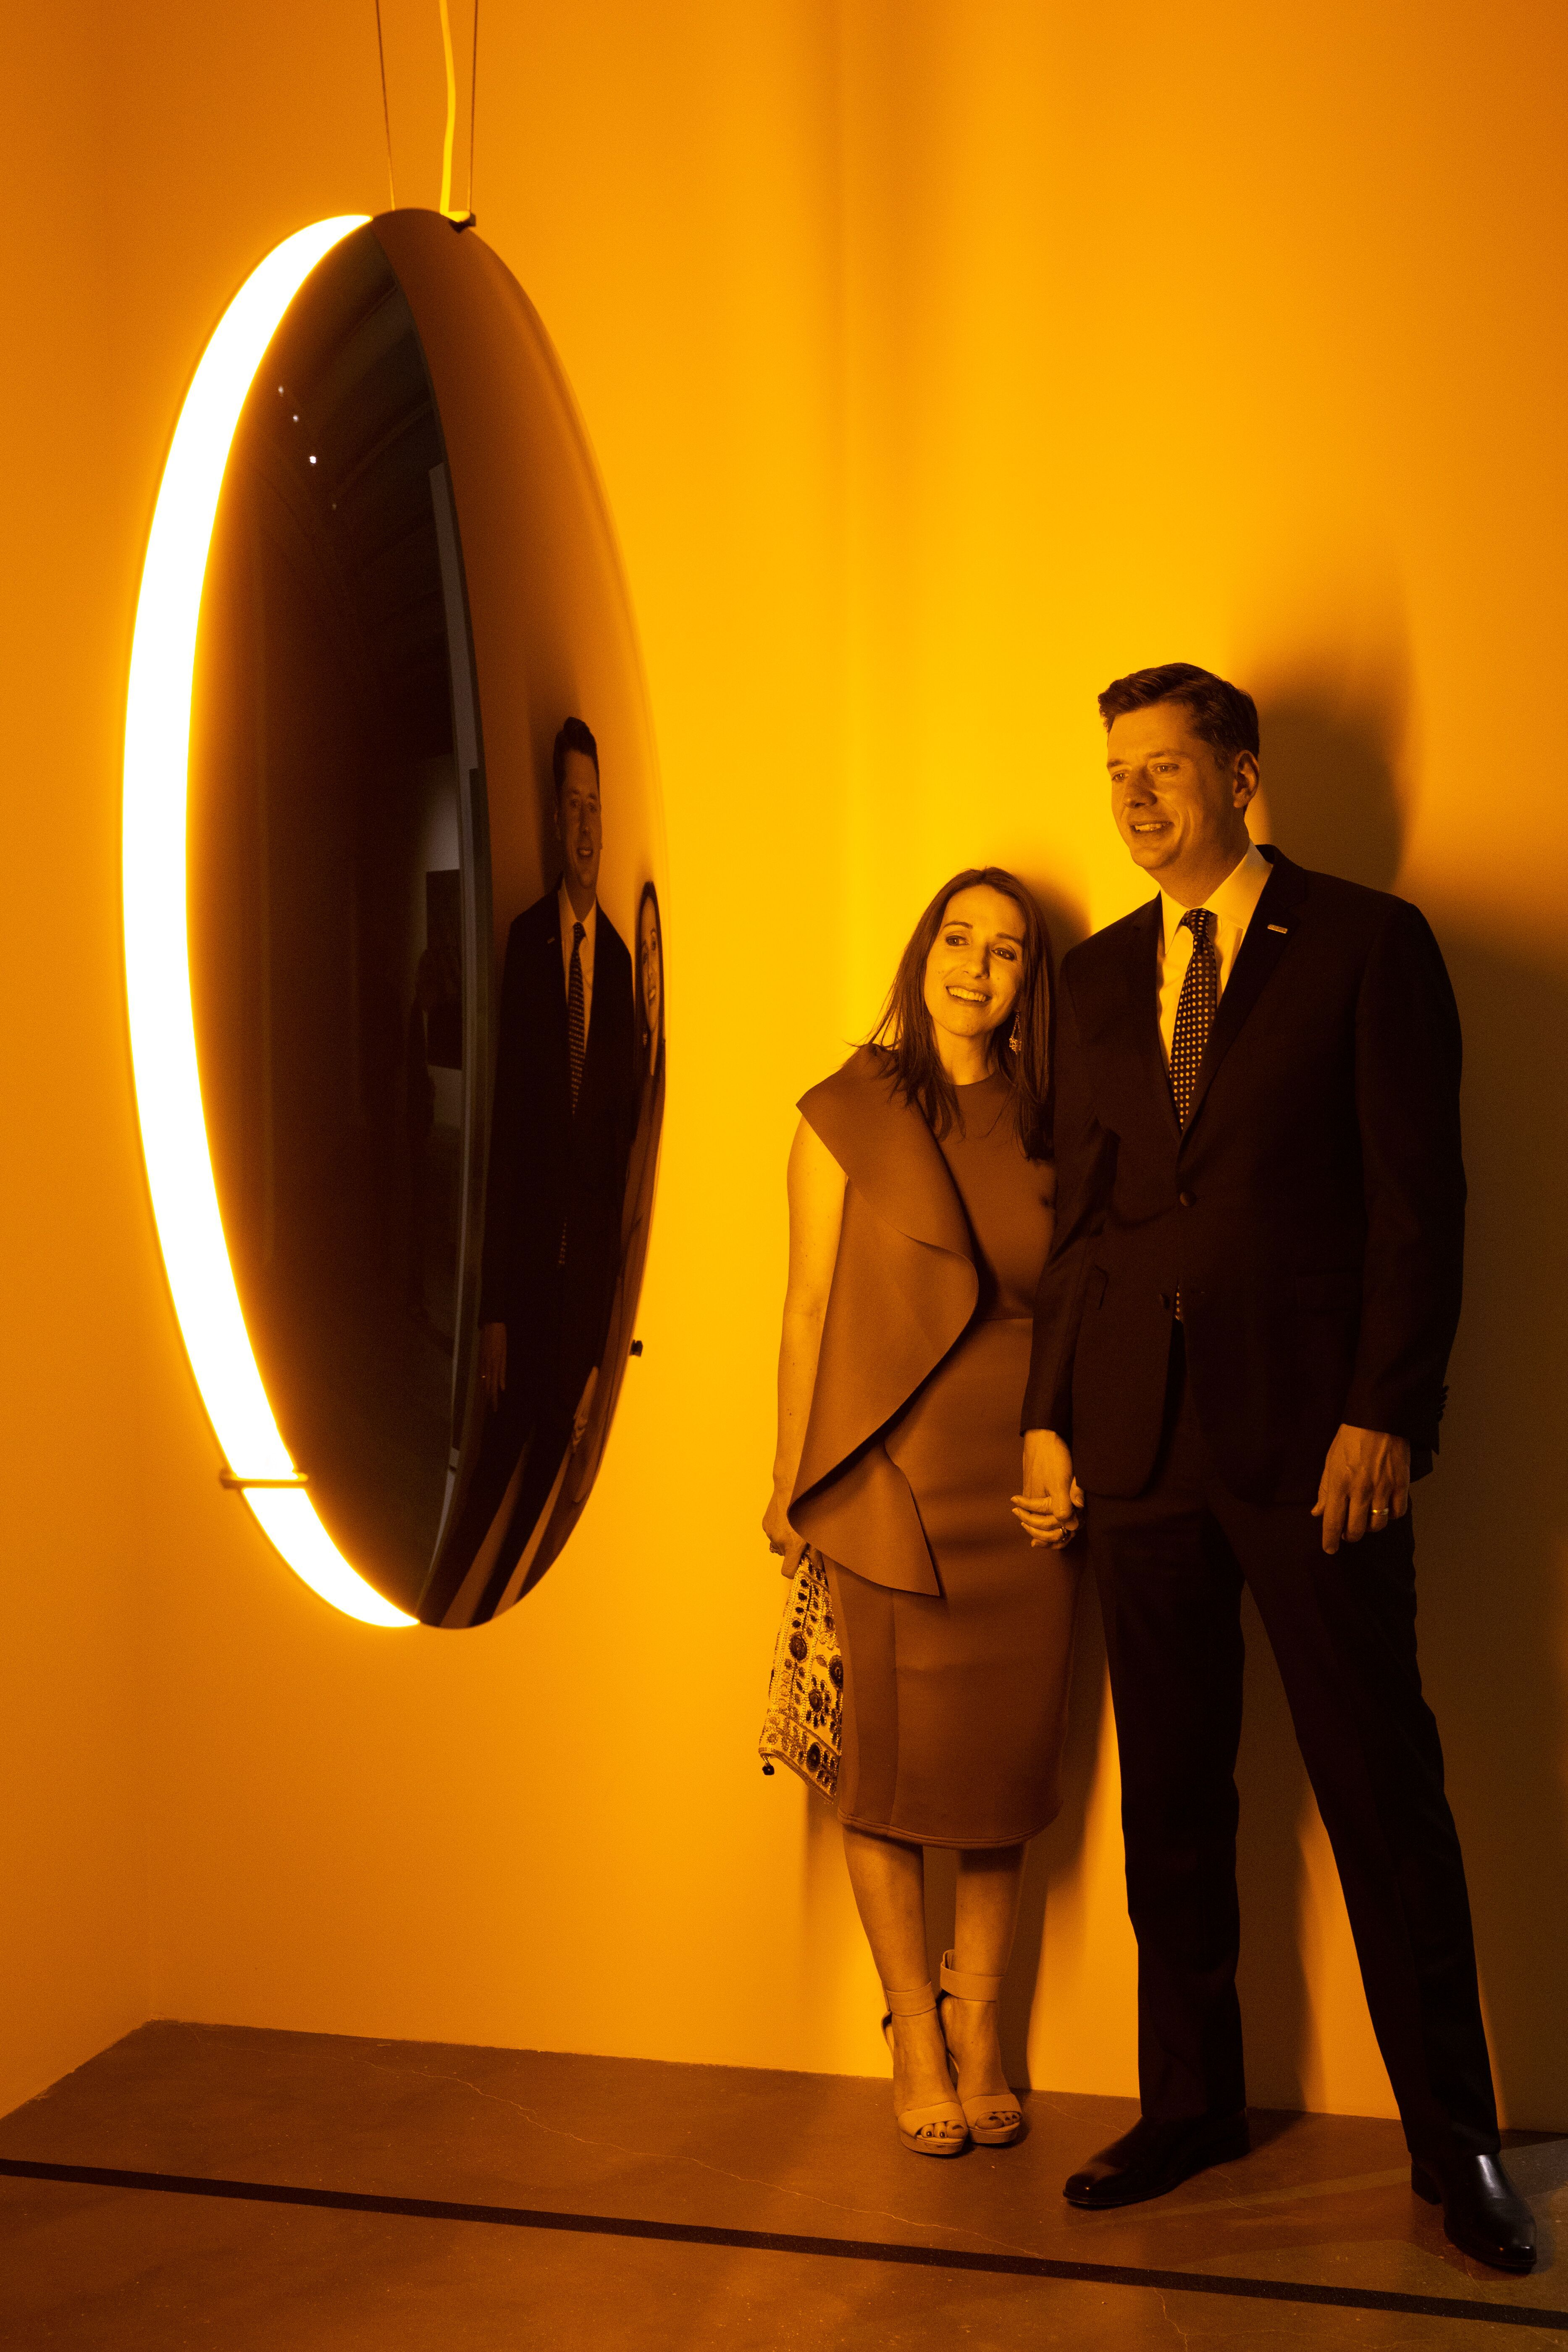 A young couple holds hands and views a suspended glass disc encompassed in a yellow glowing light